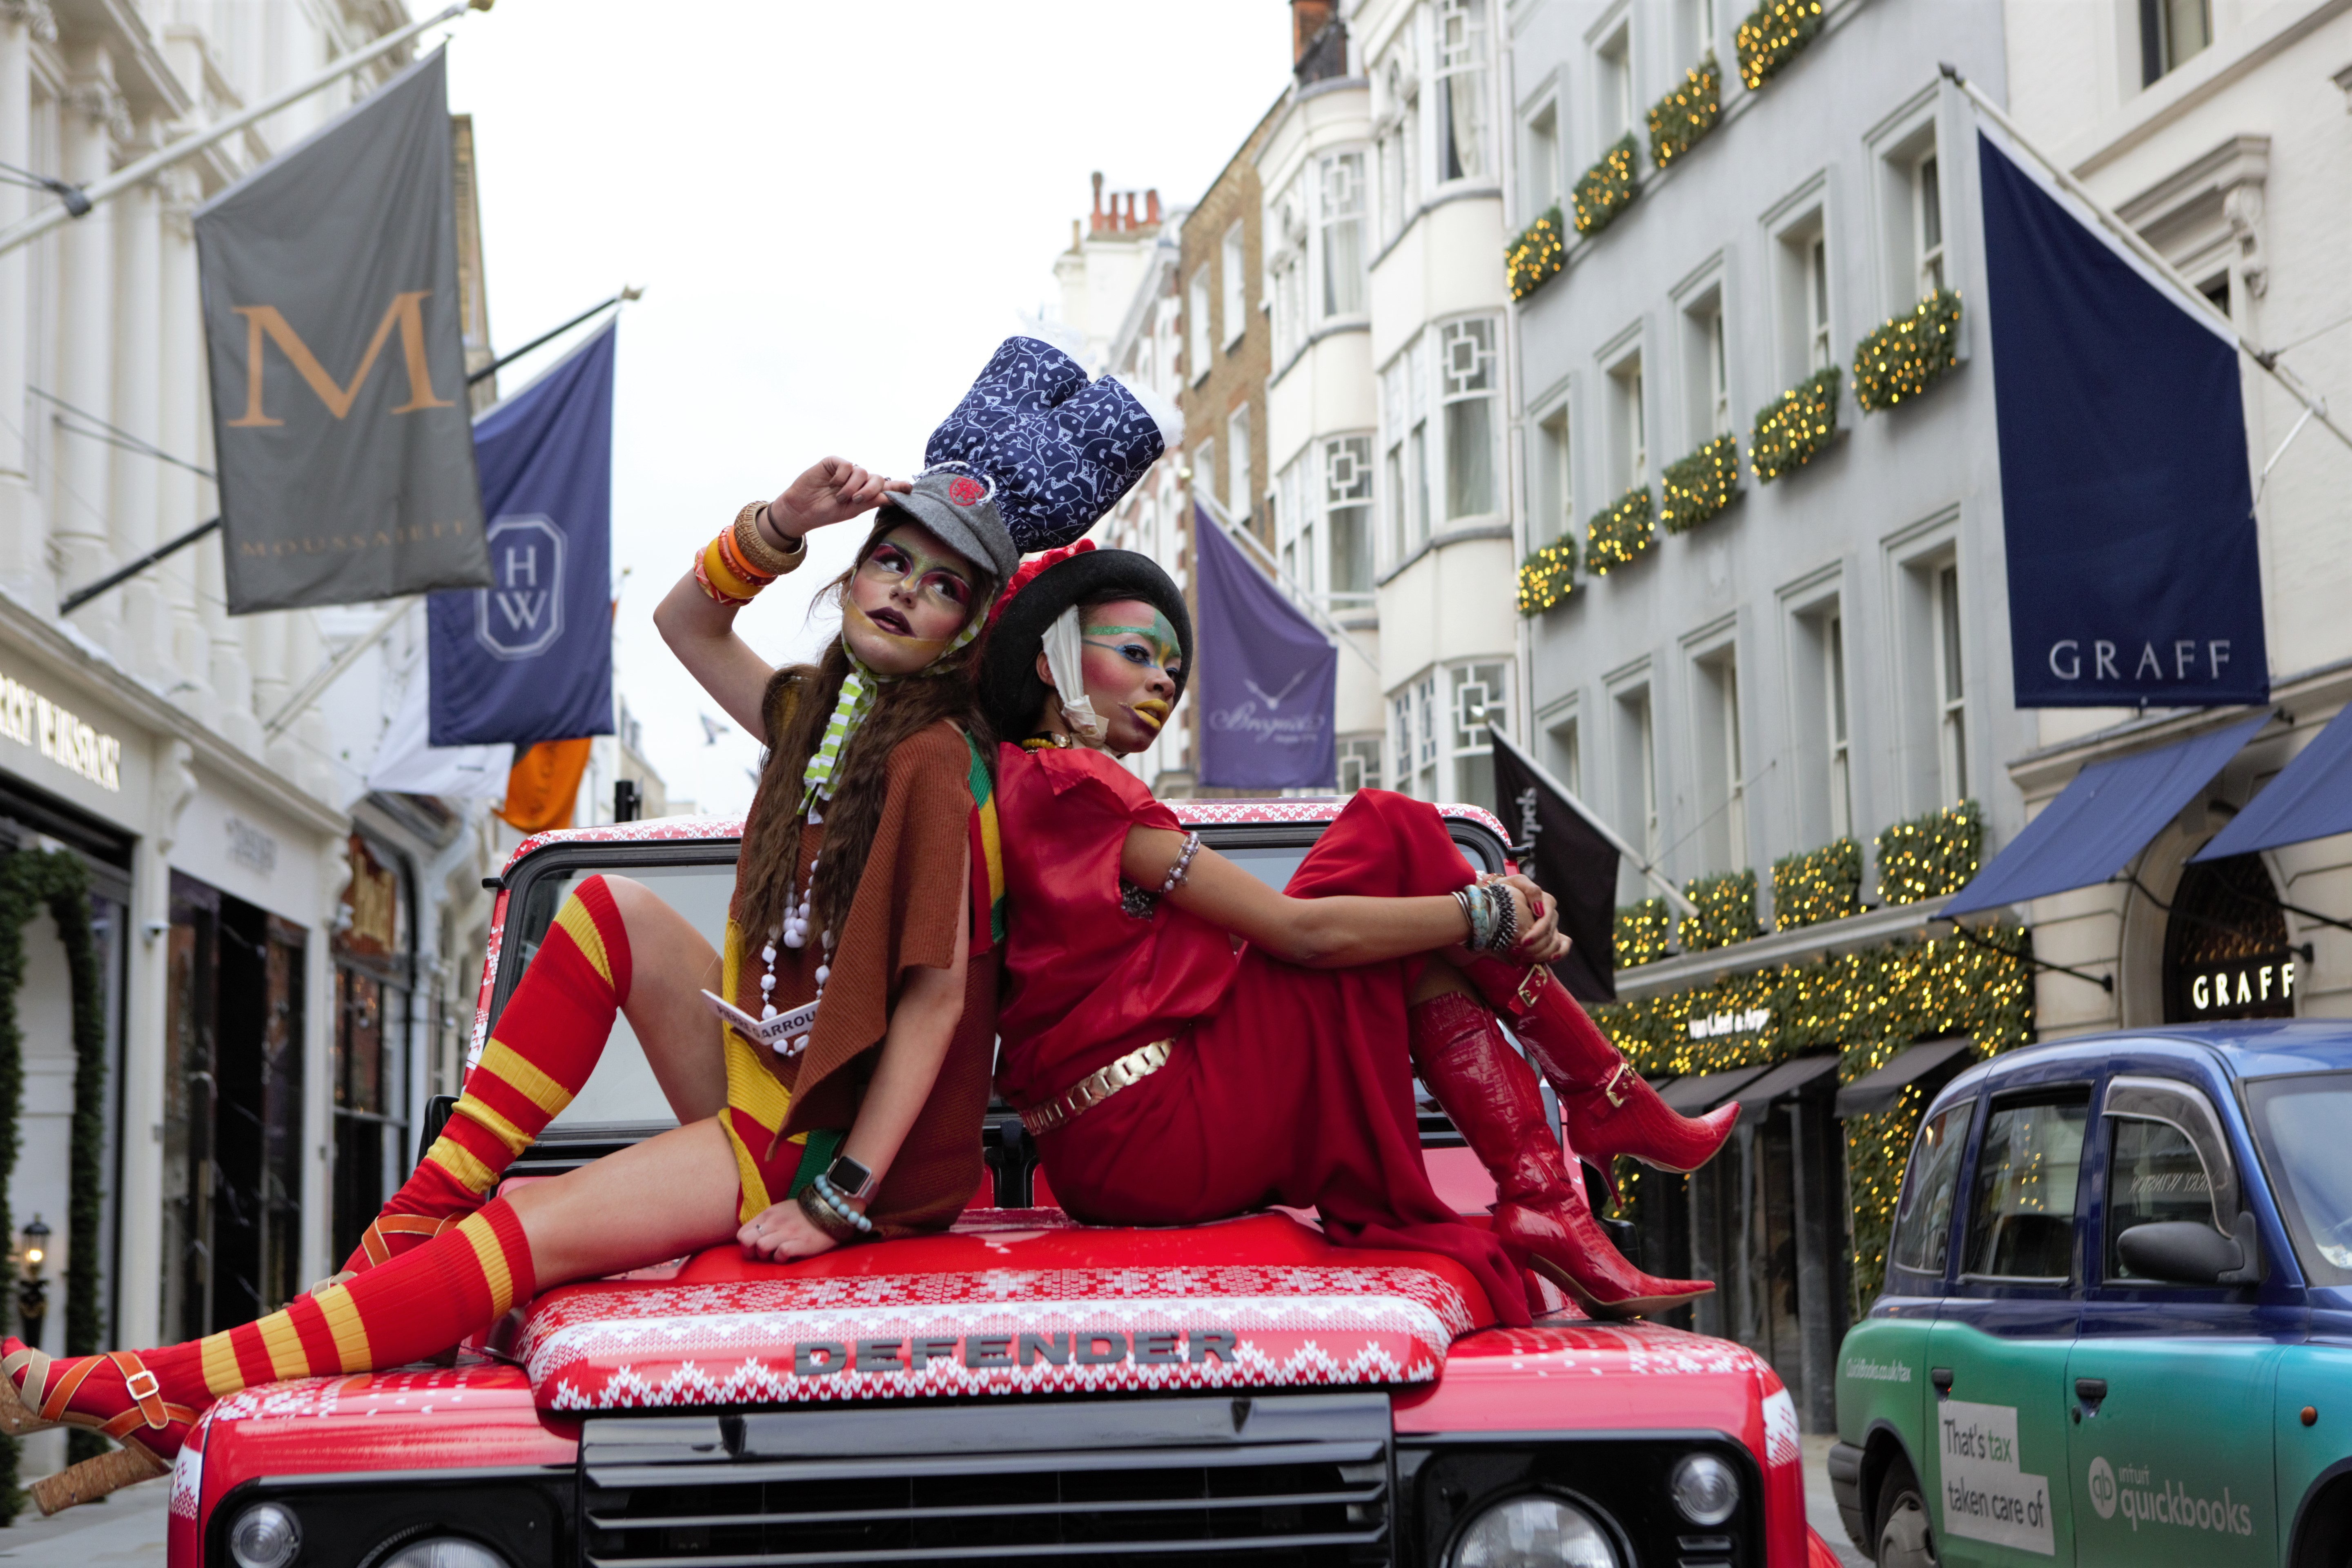 Models showcase Pierre Garroudi�s latest colorful collection at one of the designer�s specialty flash mob fashion shows in Bond Street, London. (Photo by Pietro Recchia / SOPA Images/Sipa USA)